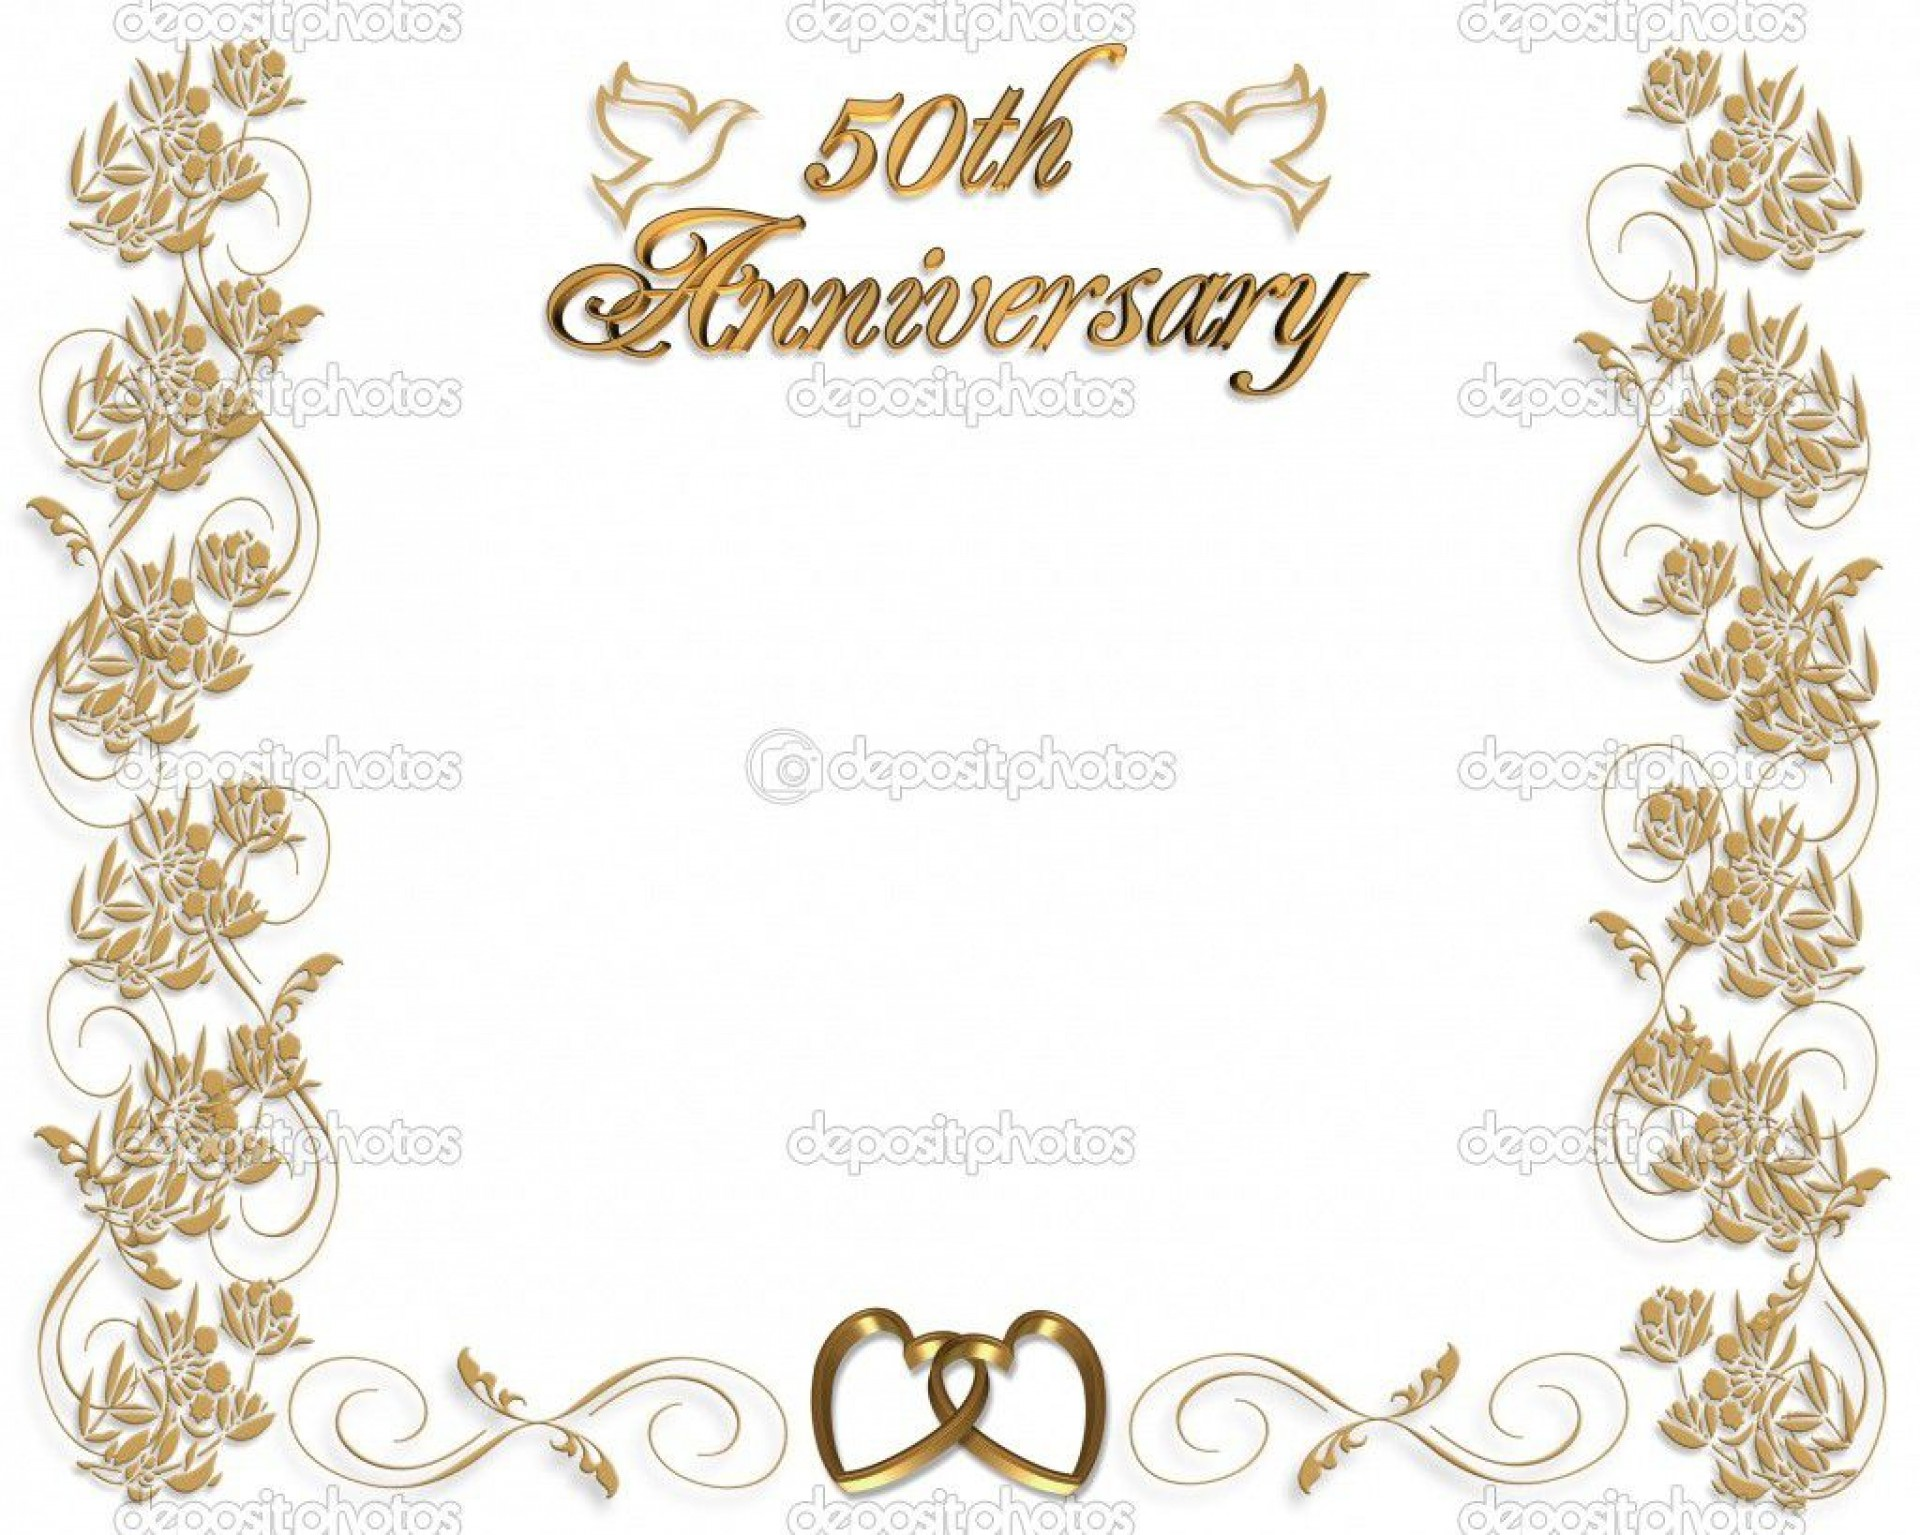 005 Amazing 50th Anniversary Invitation Template Free Highest Quality  For Word Golden Wedding Download1920